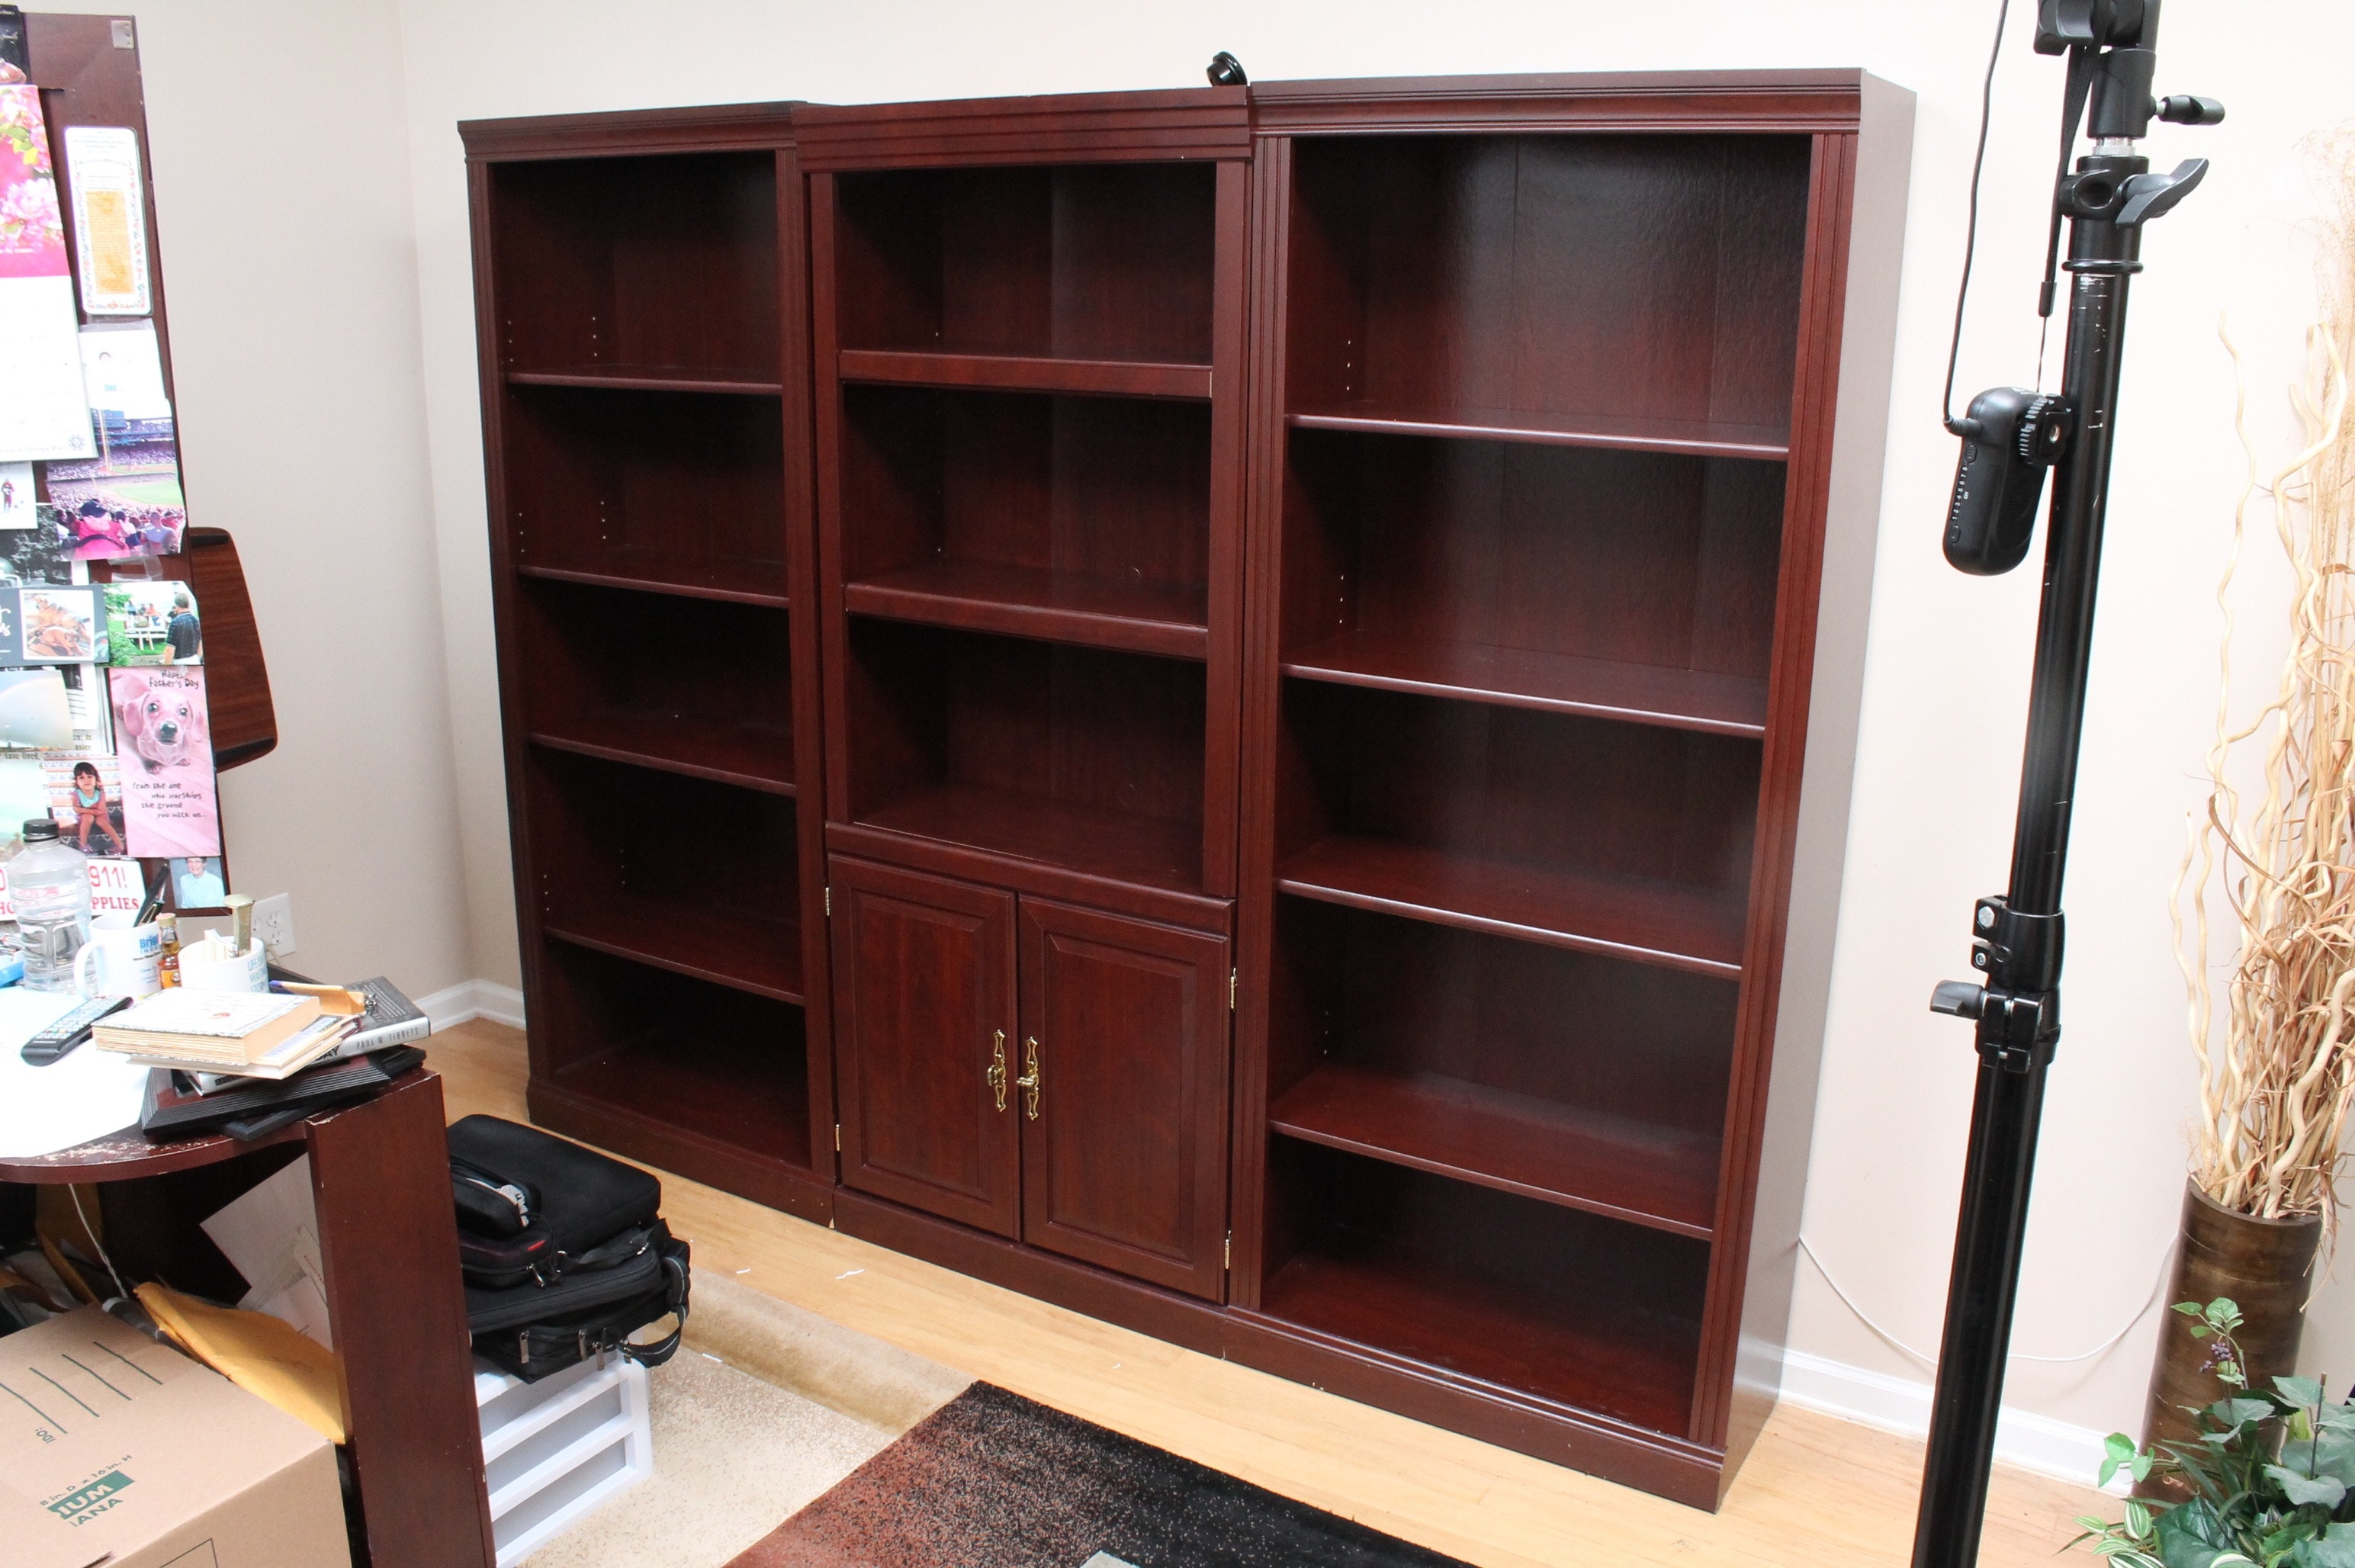 Five Engineered Wood Bookcases